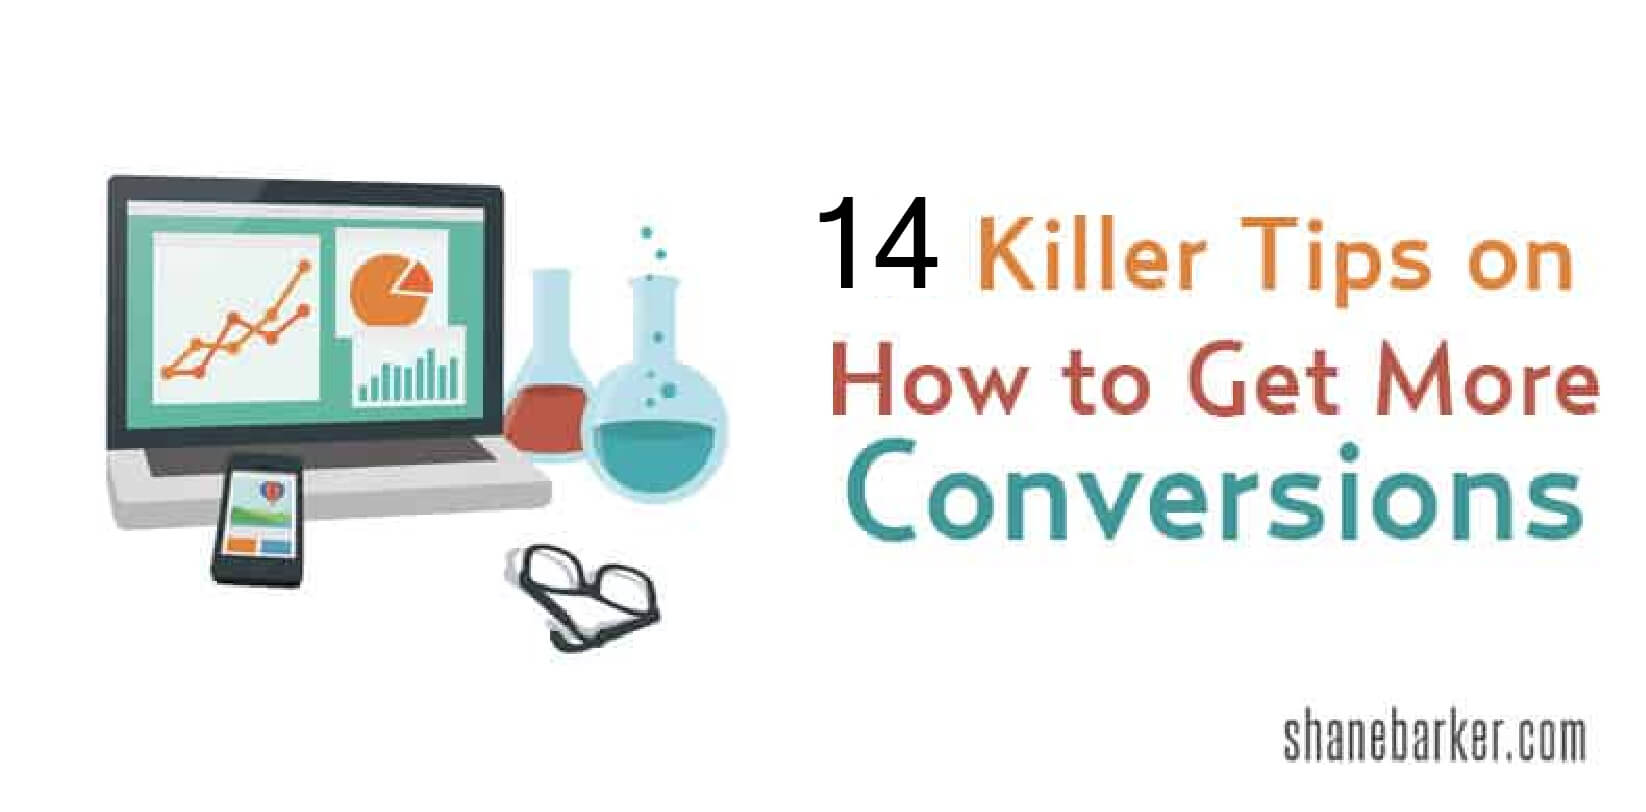 14 Killer Tips on How to Get More Conversions